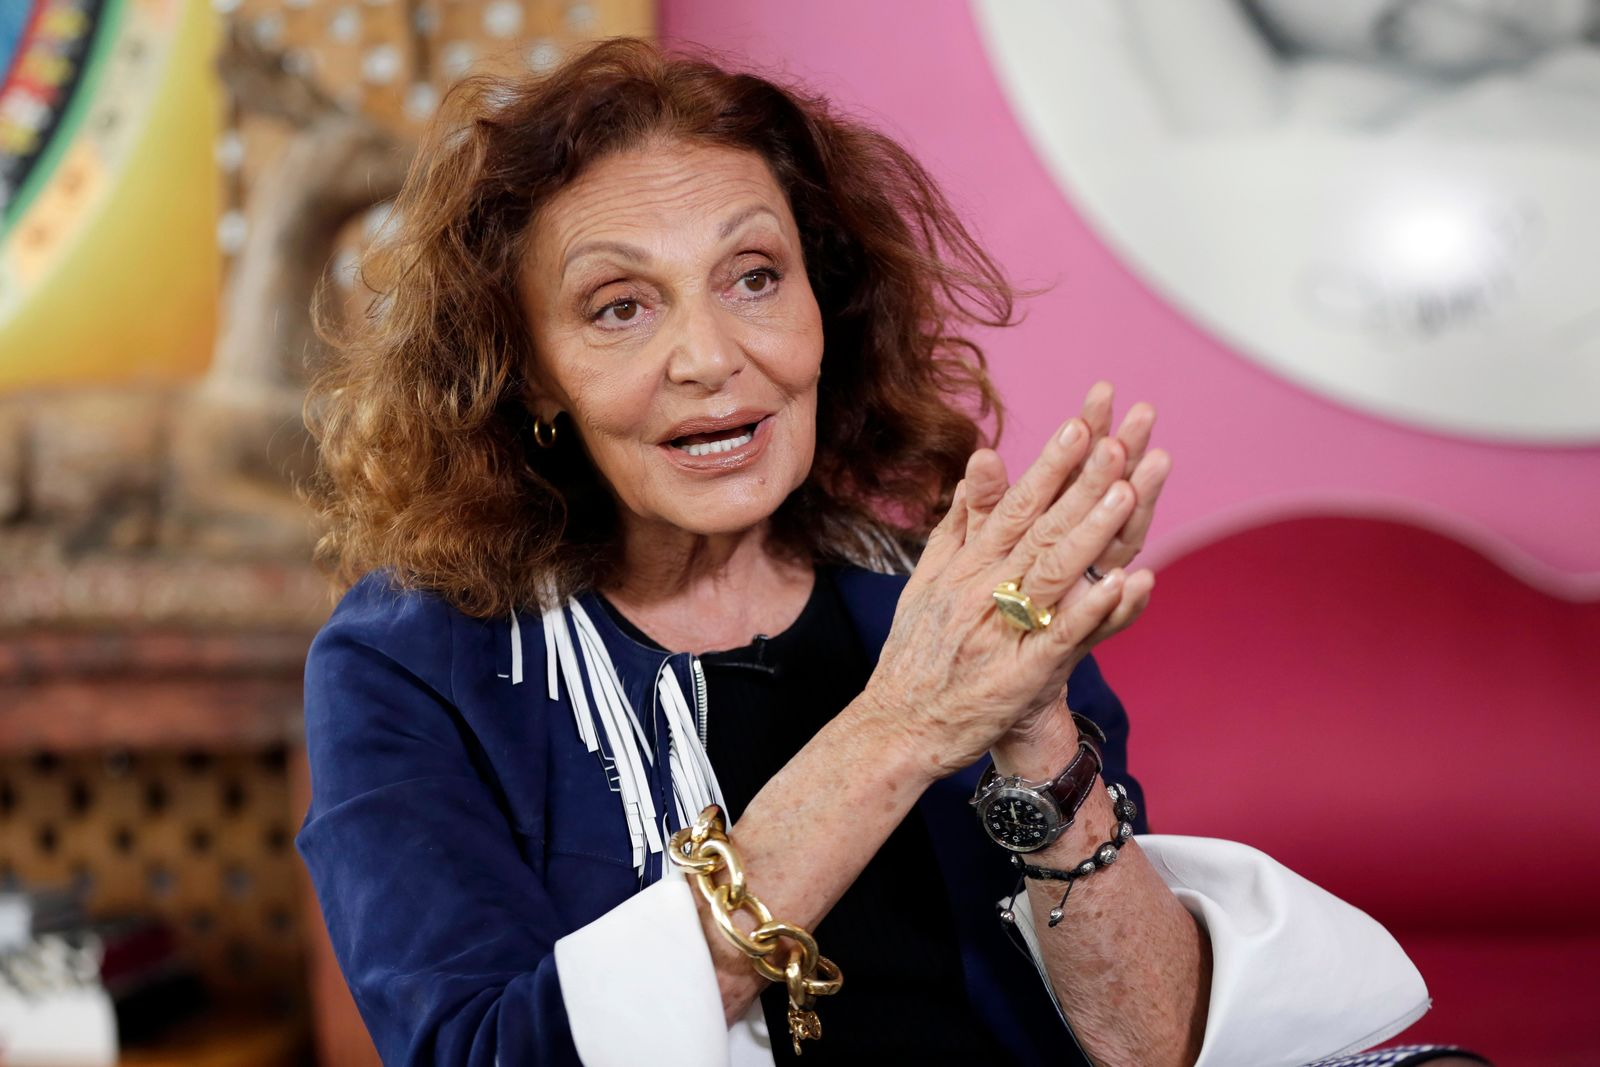 FILE - In this June 19, 2017, file photo, designer Diane von Furstenberg speaks during an interview in her office in New York's Meat Packing District. On Sept. 14, 2019, von Furstenberg joins nine other people who will be indicted into the National Women's Hall of Fame. (AP Photo/Richard Drew, File)